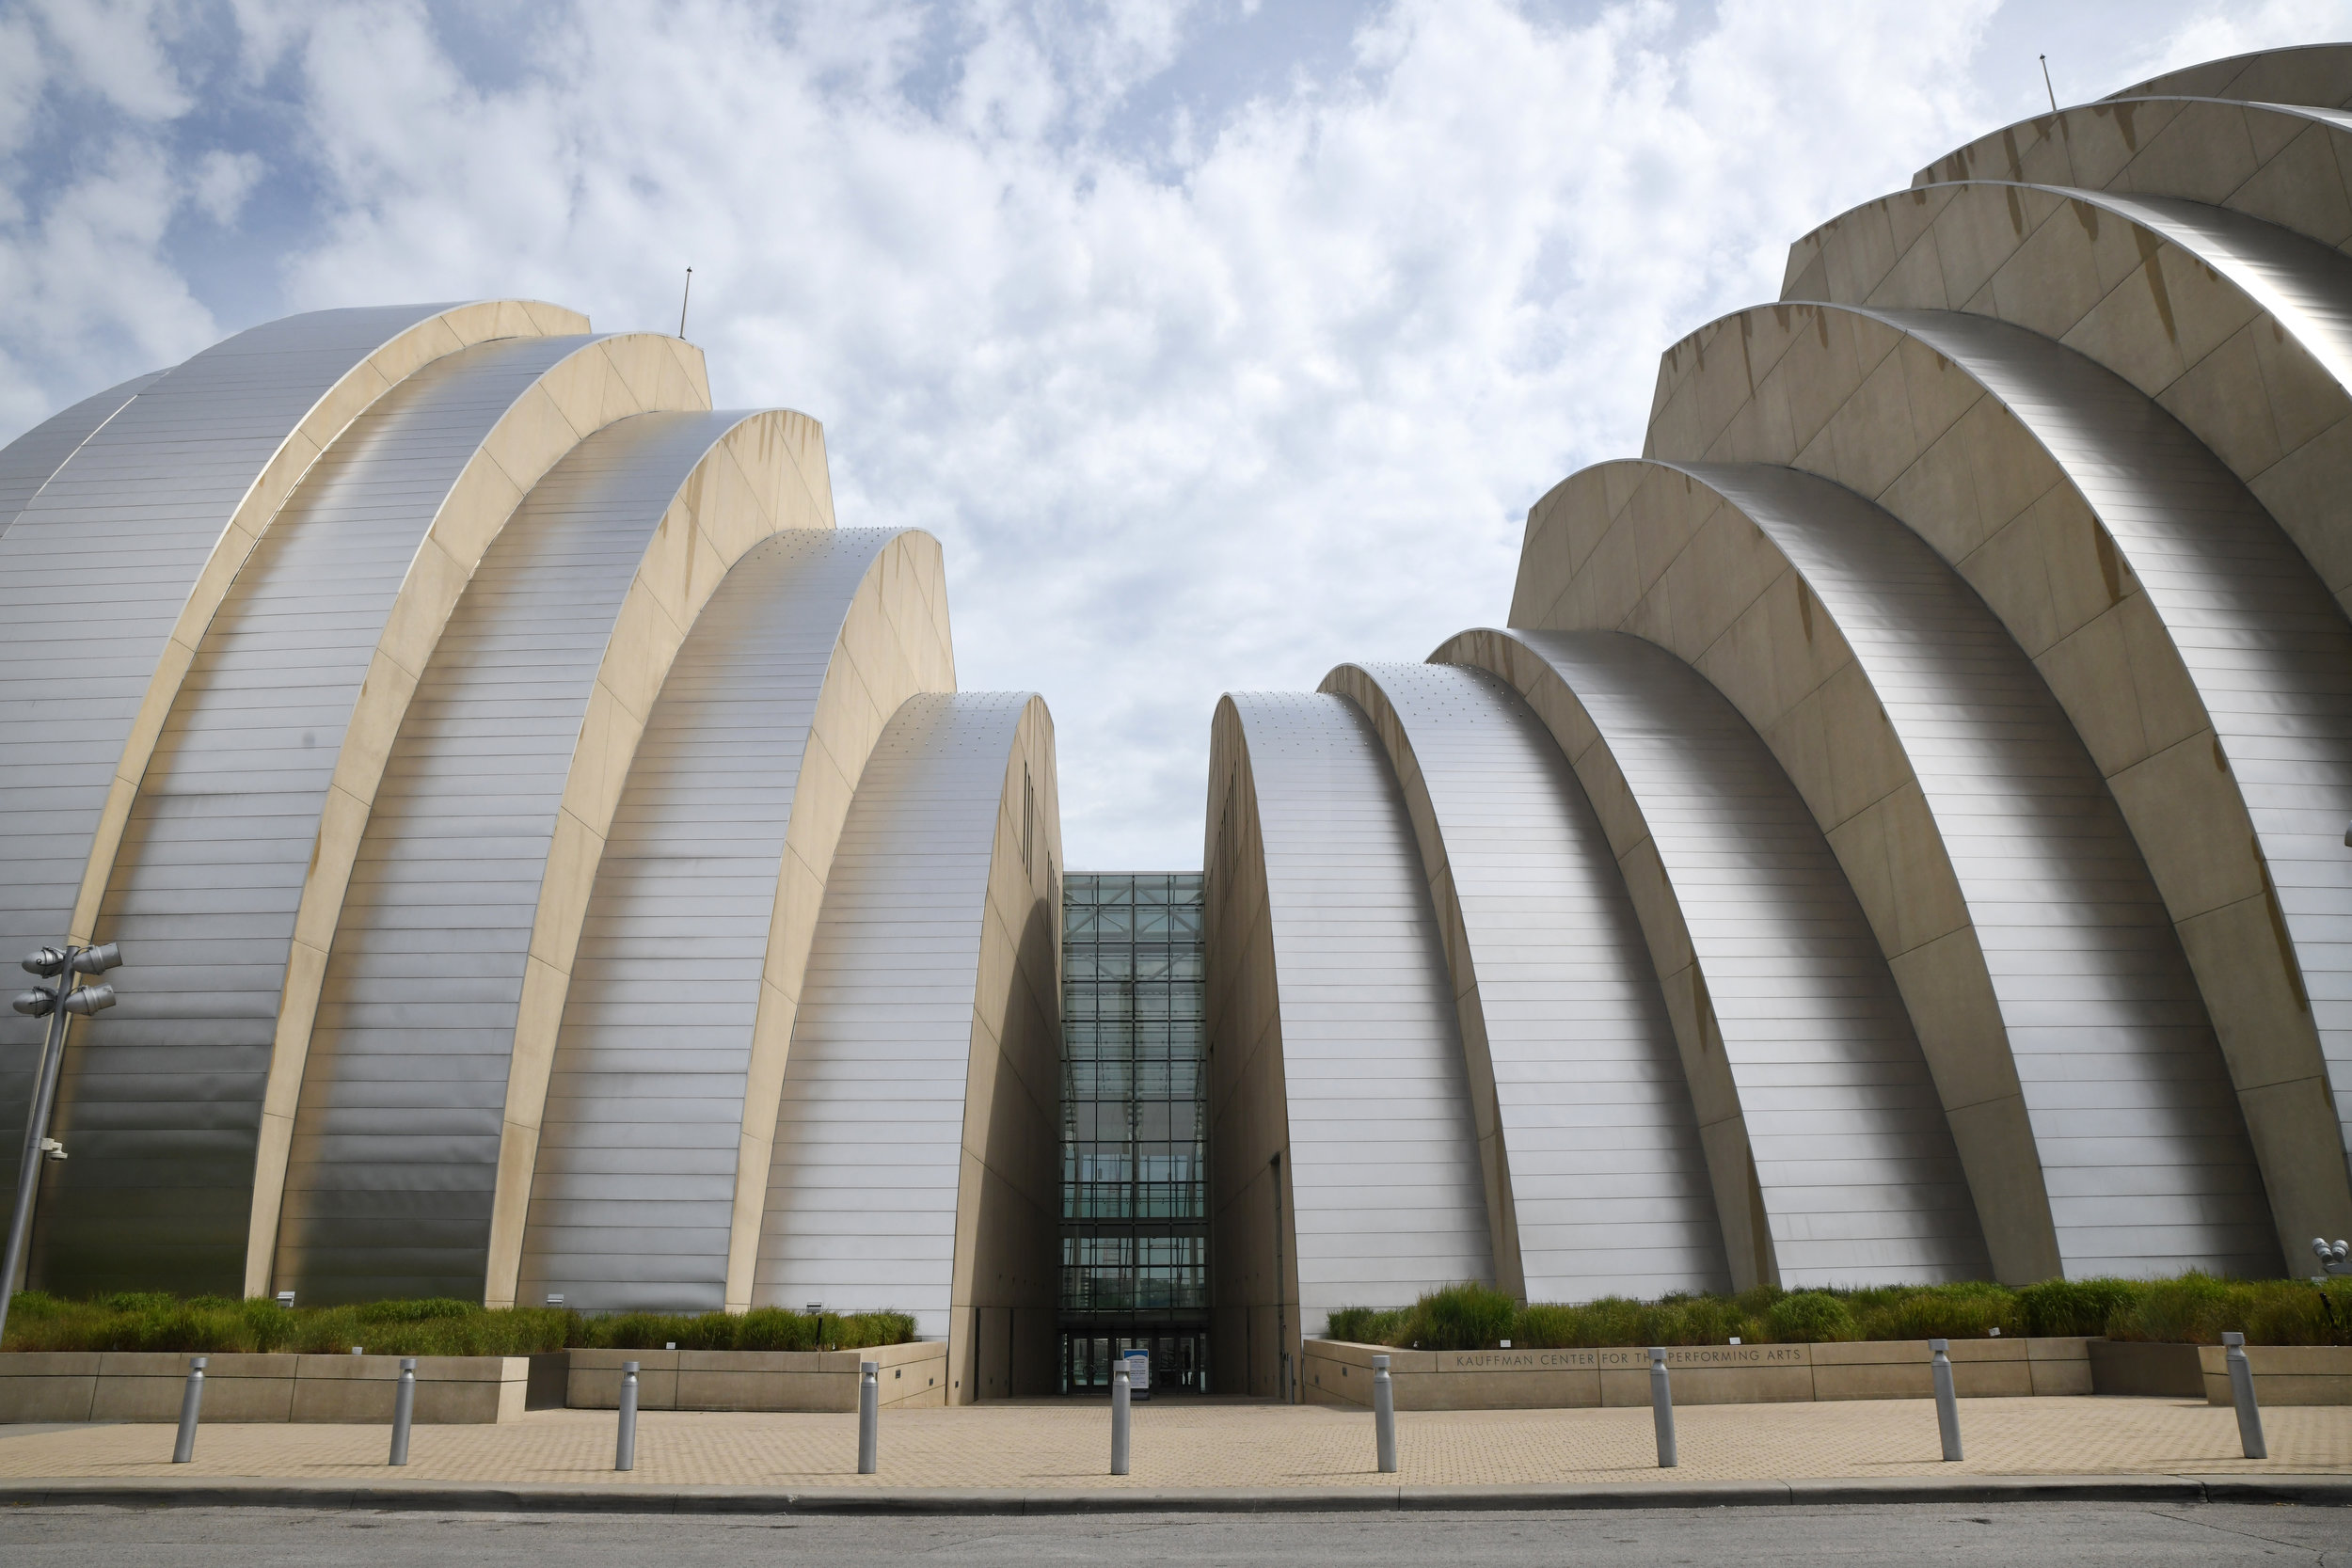 Kauffman Center for the Performing Arts. All photos by Anna Petrow